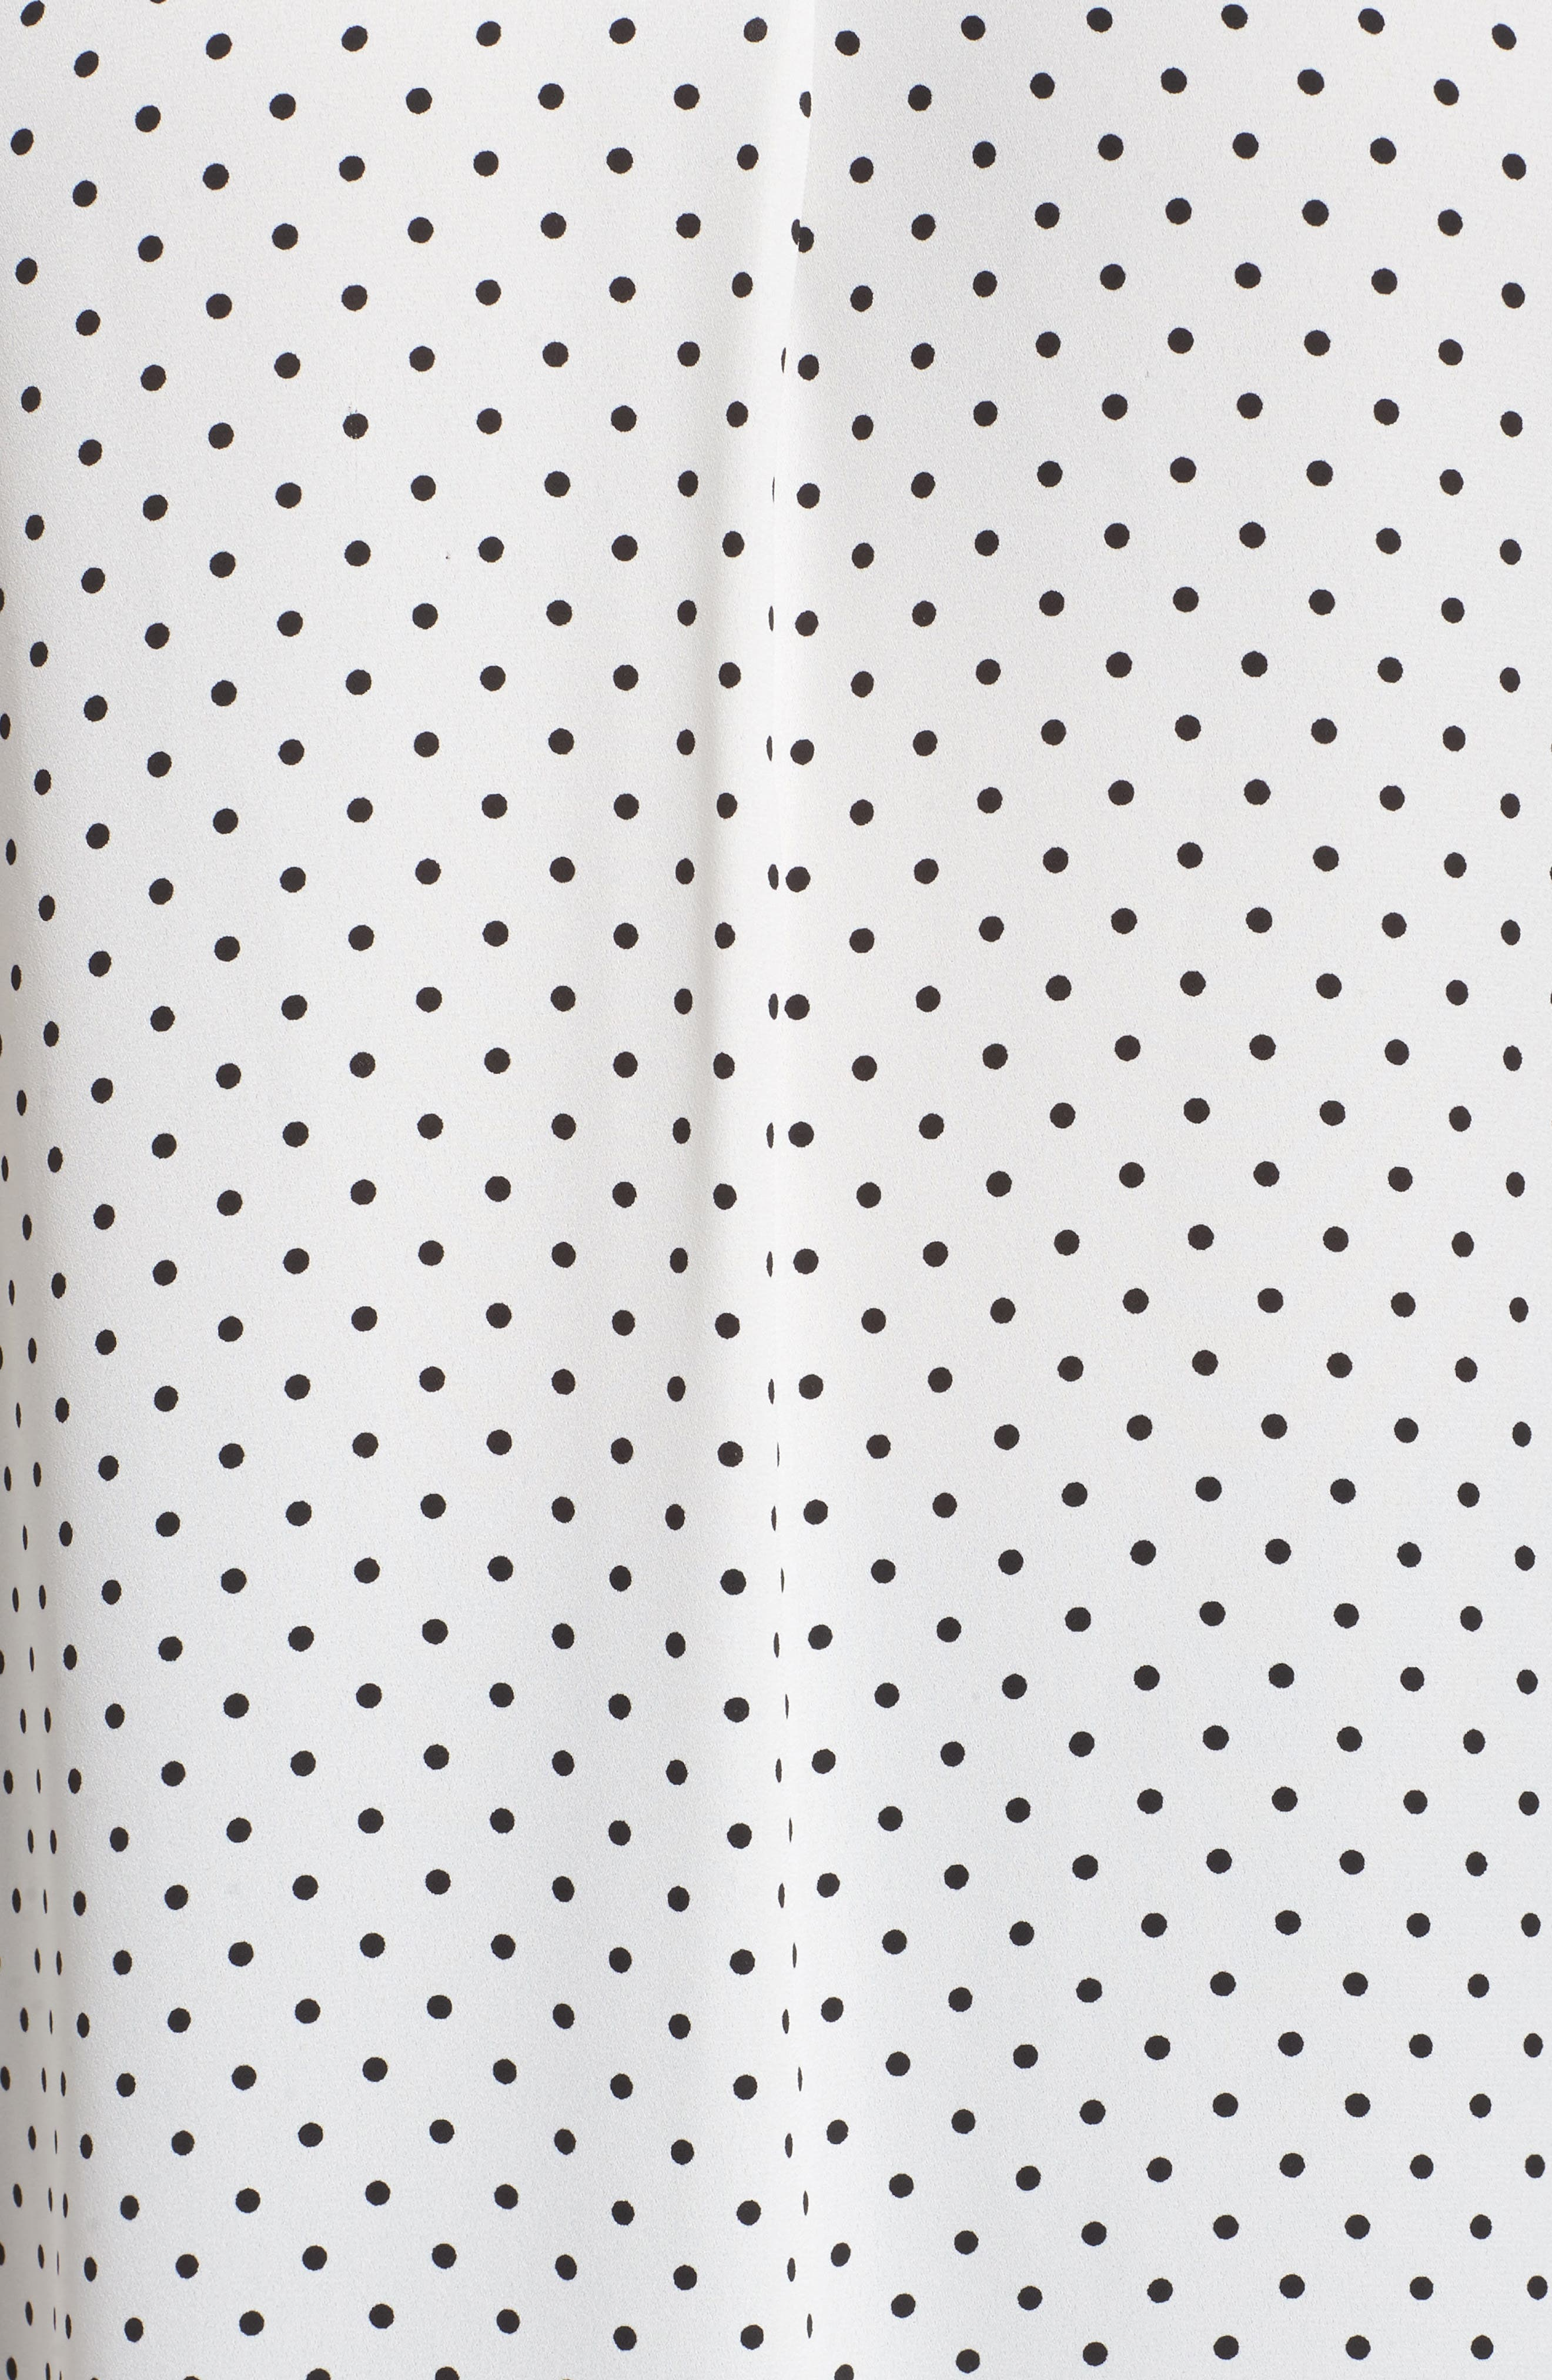 Poetic Dots Sleeveless V-Neck Blouse,                             Alternate thumbnail 5, color,                             903